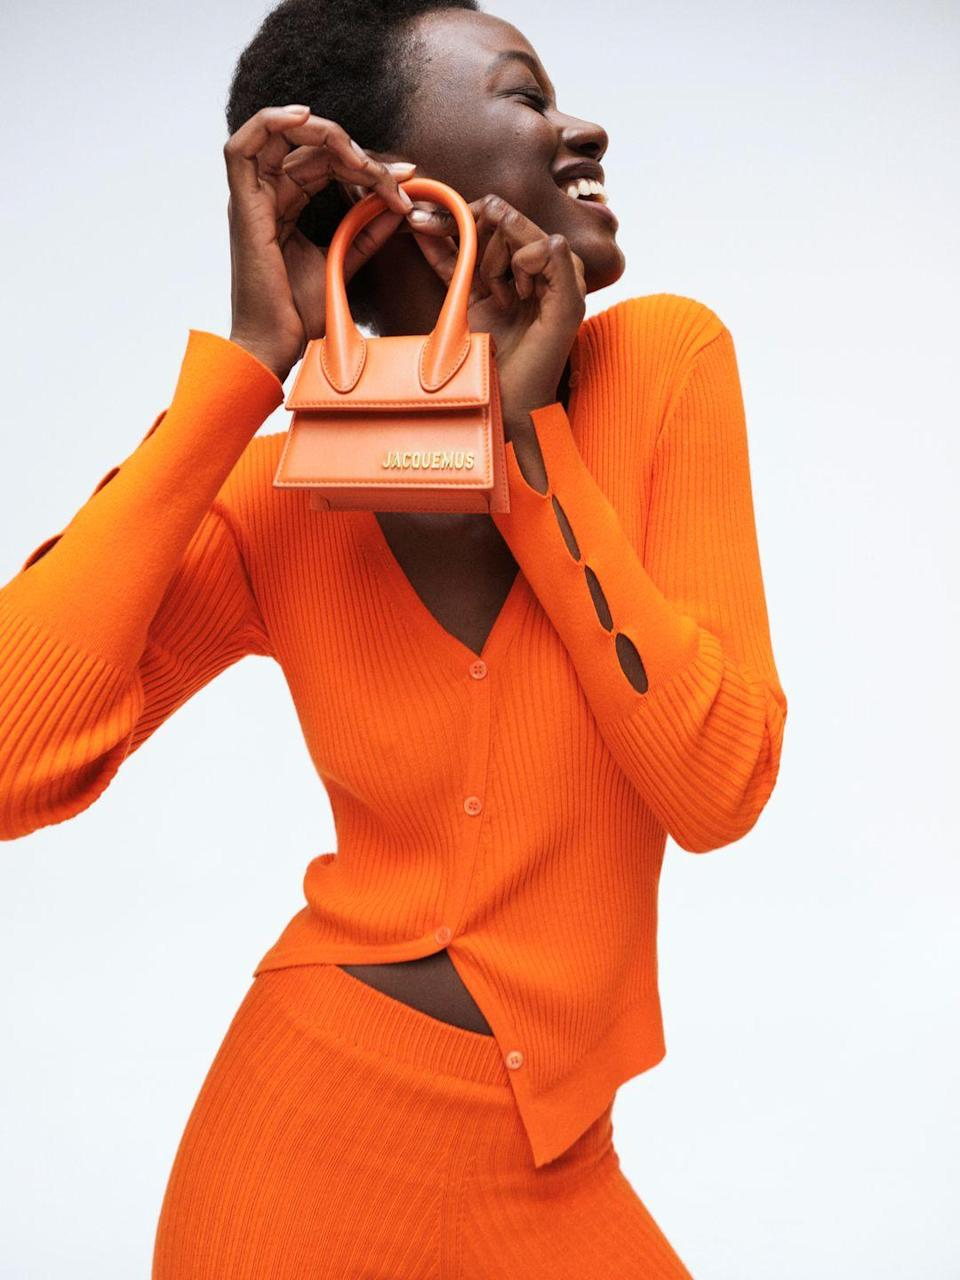 """<p><strong>Who:</strong> MyTheresa</p><p><strong>What:</strong> Capsule collaboration with Jacquemus</p><p><strong>Where:</strong> Online only at MyTheresa.com</p><p><strong>Why:</strong> French fashion designer Simon Porte Jacquemus has developed a signature aesthetic rooted in feminine, French, and flirty silhouettes and fabrics. Online retailer MyTheresa is launching an exclusive 13-piece Jacquemus capsule collection just in time for the hottest months of the year. Jacquemus' classic colorings of vibrant orange and hot pink take life in linen blazers, shorts, cropped shirts, knits, and mini-dresses that are breathable, sexy, and easily transition from the beach to the bar. The iconic Chiquito bag is also reimagined in these two colors to complete the French girl fantasy.<br></p><p><a class=""""link rapid-noclick-resp"""" href=""""https://go.redirectingat.com?id=74968X1596630&url=https%3A%2F%2Fwww.mytheresa.com%2Fen-us%2Fdesigners%2Fjacquemus.html%3FOSS%3DWL-Jacquemus&sref=https%3A%2F%2Fwww.elle.com%2Ffashion%2Fshopping%2Fg36597382%2Fthe-launch-june-2021%2F"""" rel=""""nofollow noopener"""" target=""""_blank"""" data-ylk=""""slk:SHOP NOW"""">SHOP NOW</a></p>"""